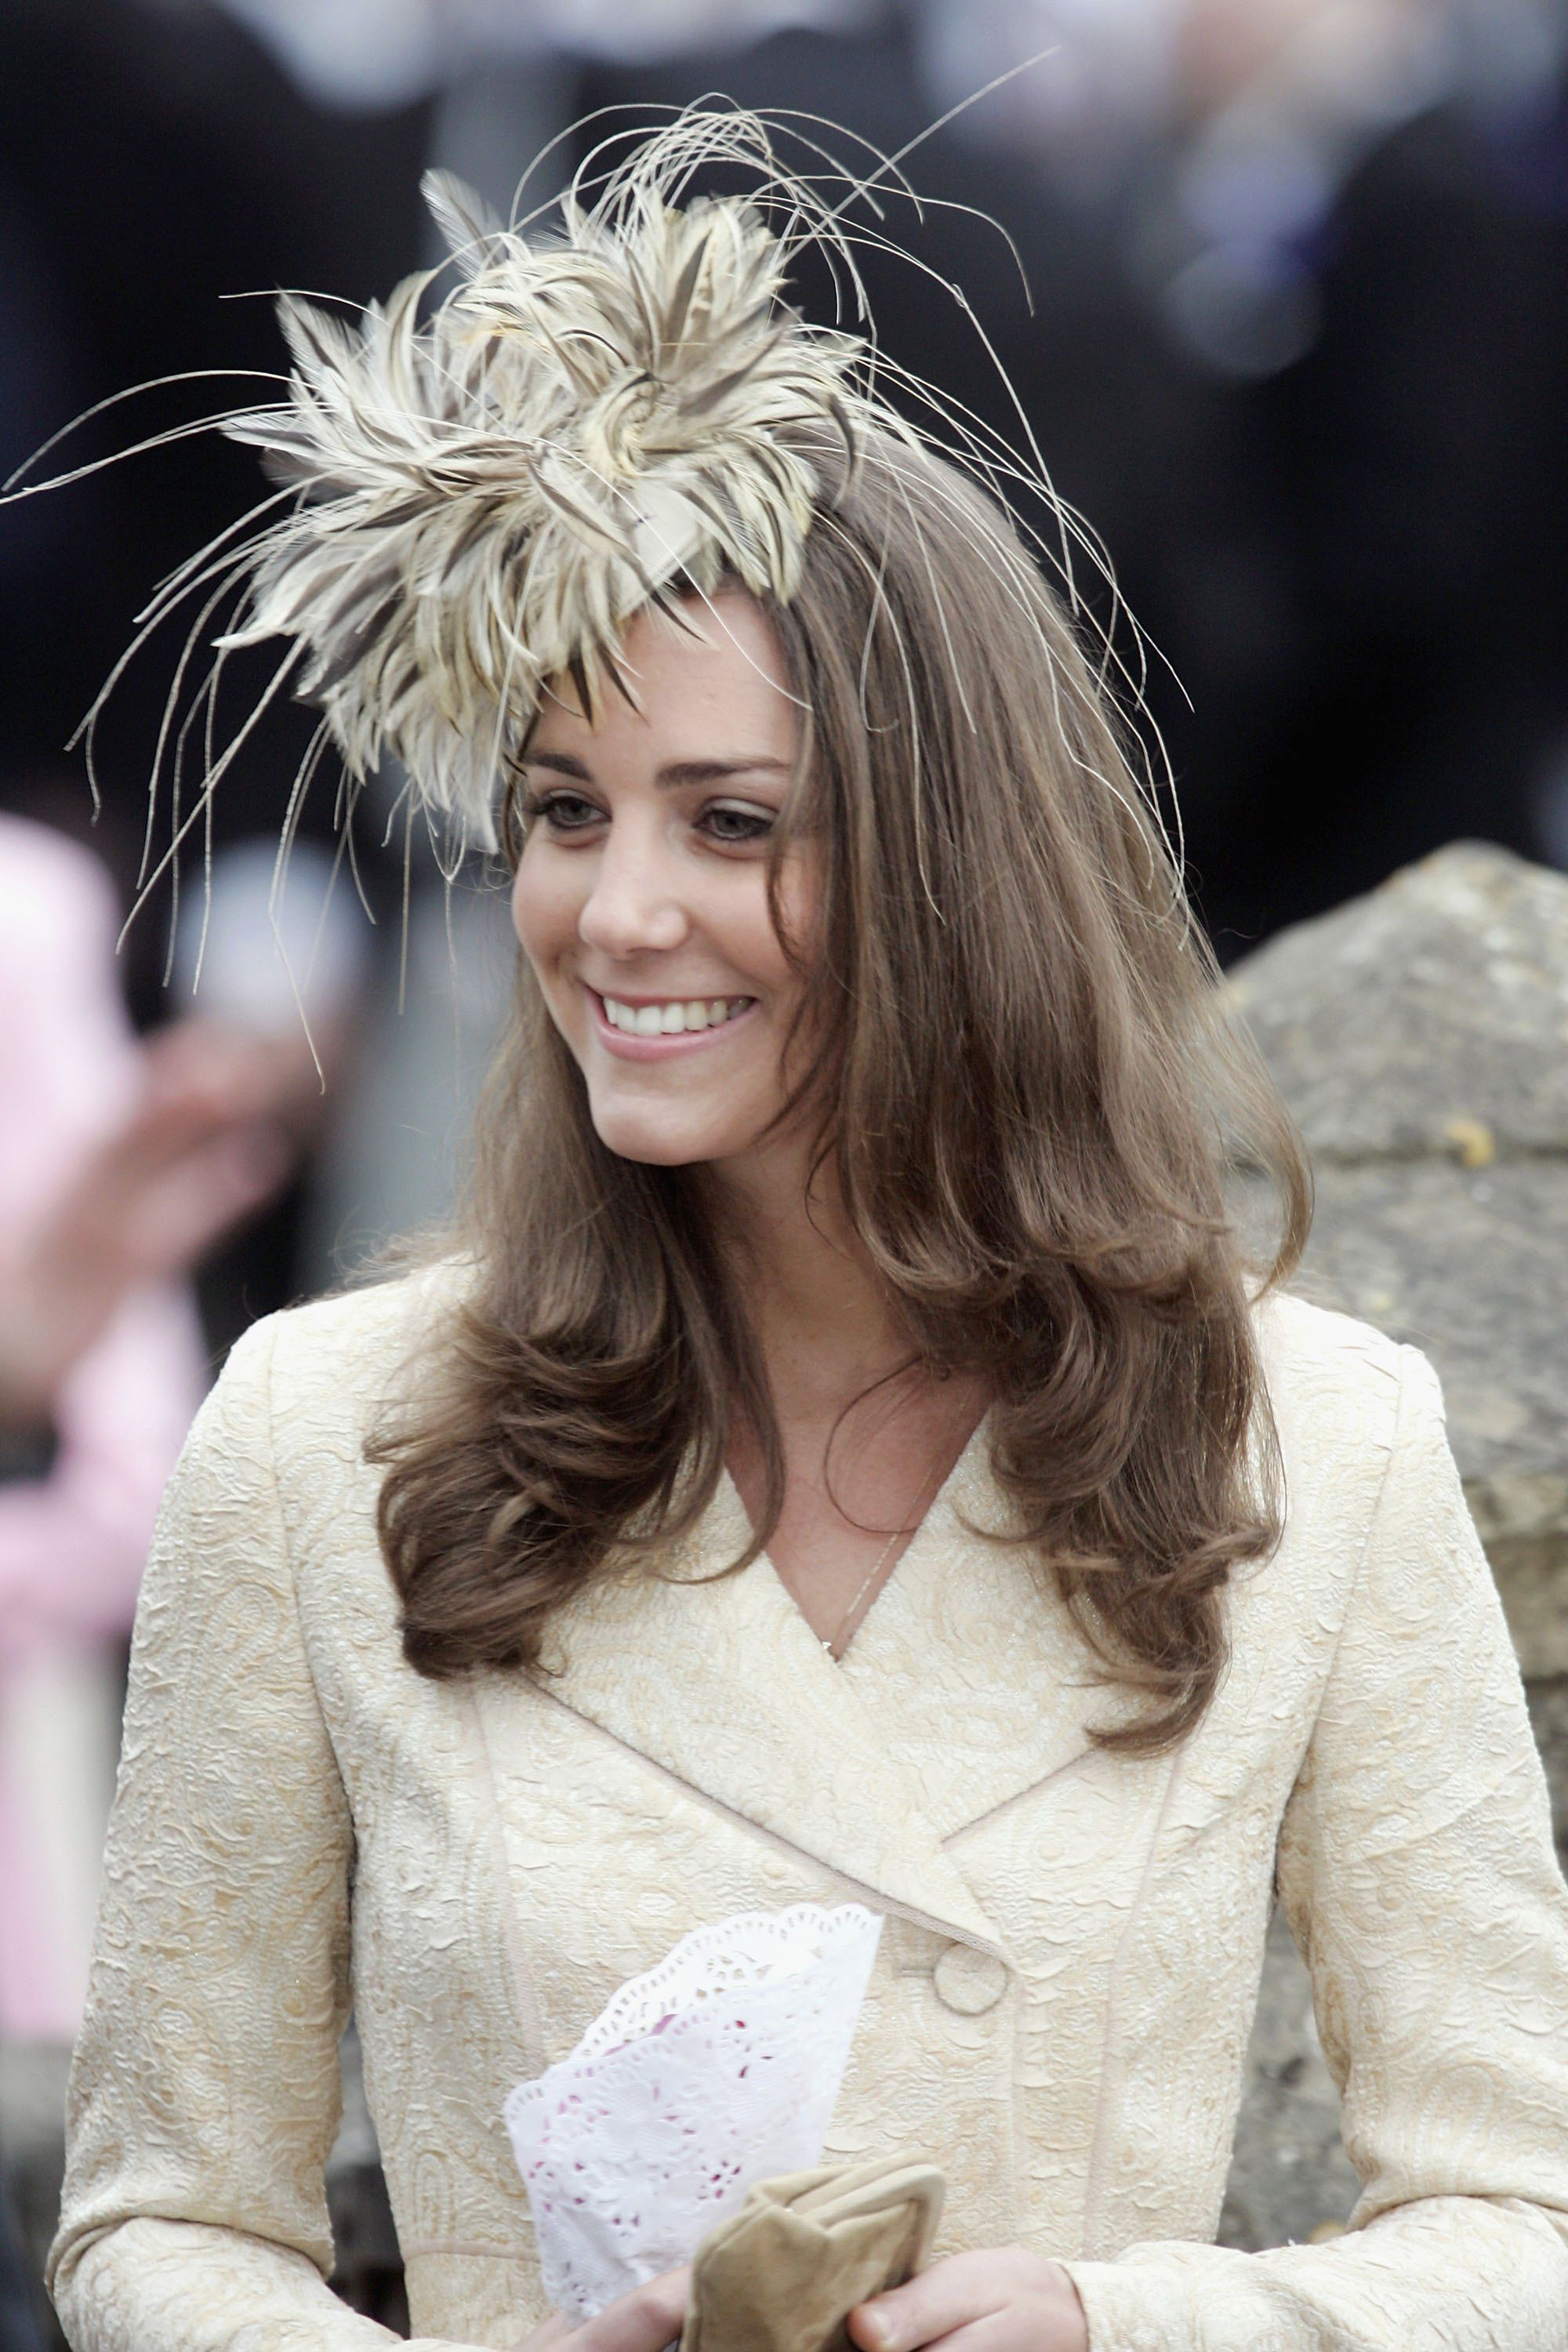 Kate Middleton attends as wedding guest at the marriage of Laura Parker-Bowles and Harry Lopes at St Cyriac's Church, 2006/Photo:Getty Images